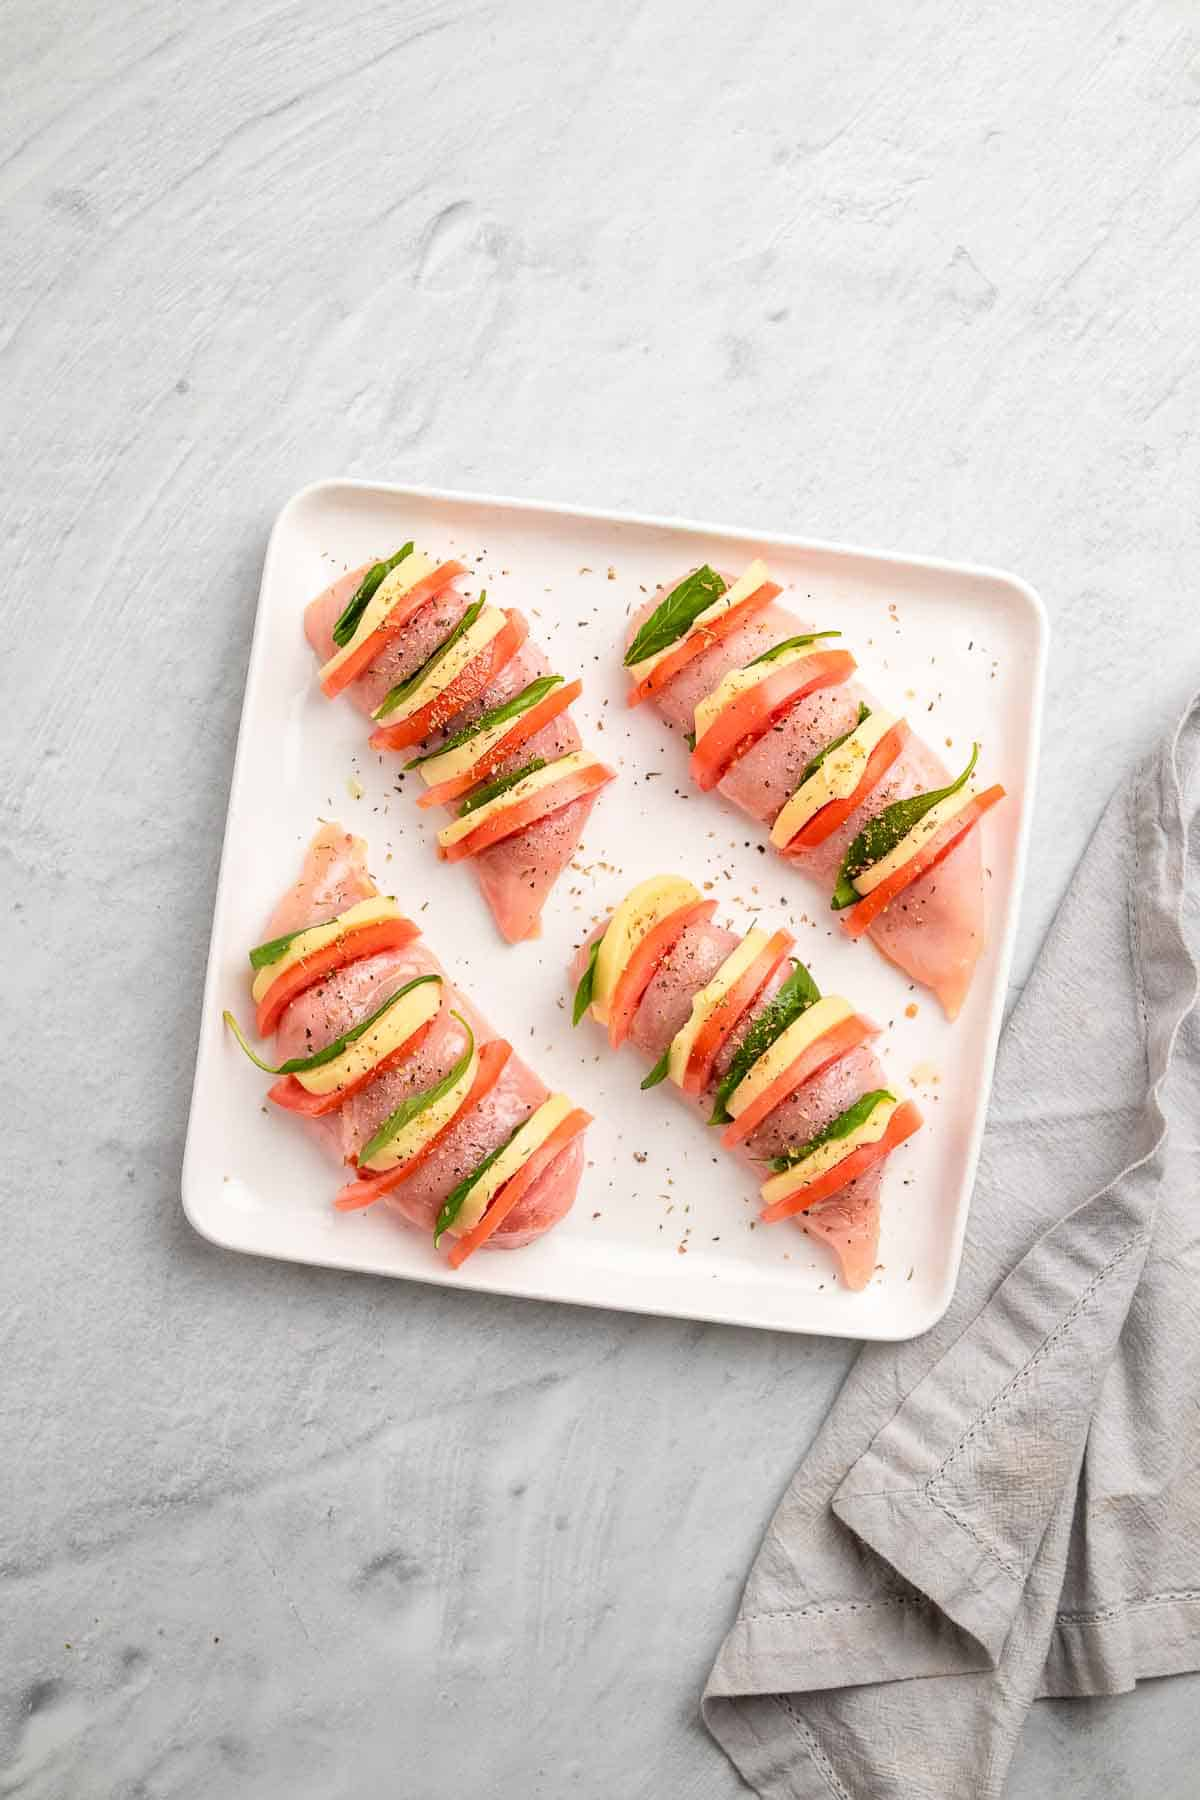 Sliced chicken breasts stuffed with mozzarella, tomato, and basil leaves, topped with salt and pepper